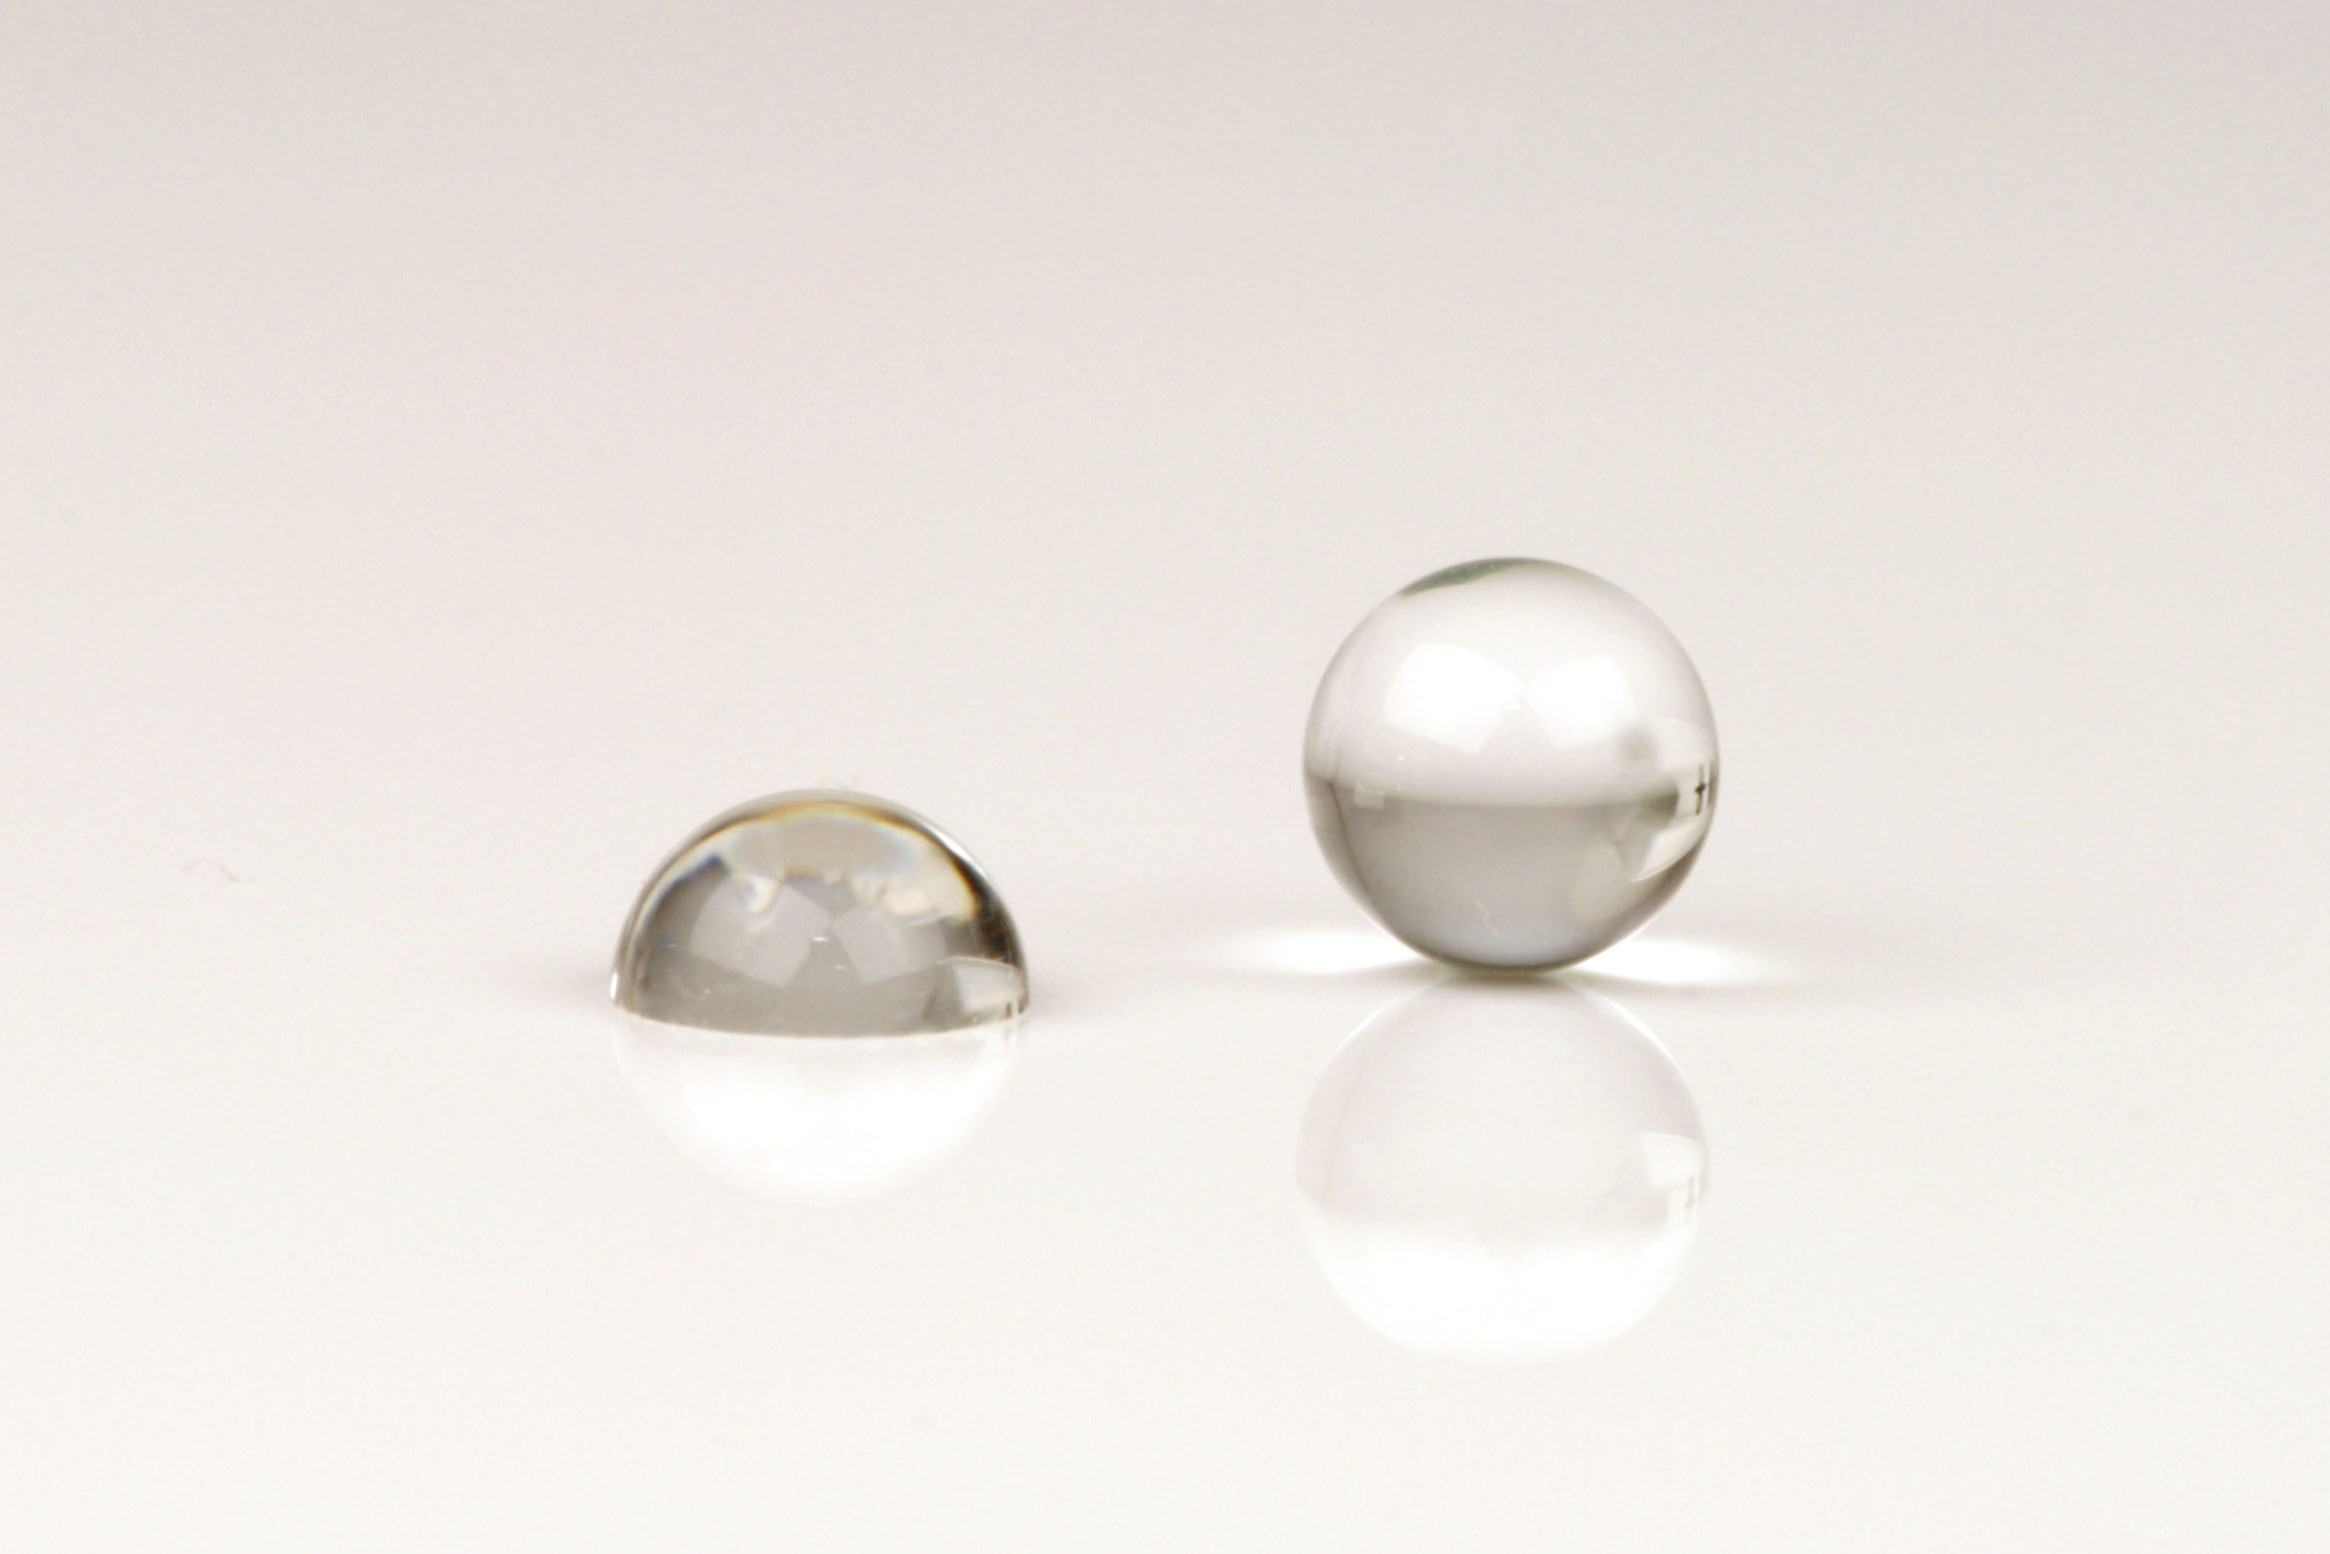 Ball half and full lenses for electronics industry